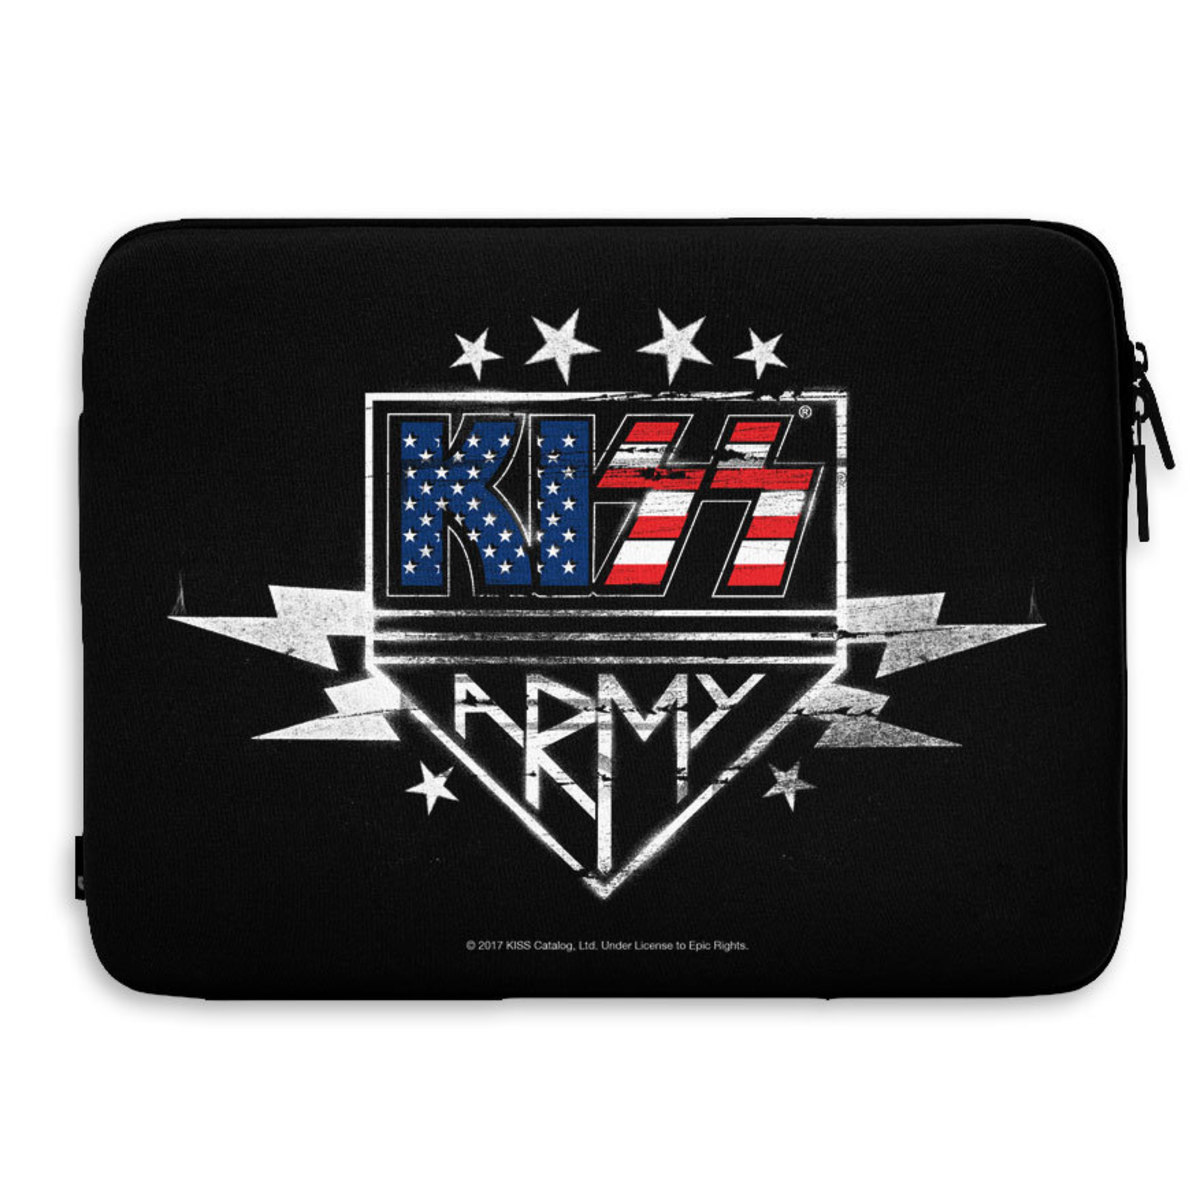 pouzdro na notebook Kiss - Army - HYBRIS - ER-71-KISS7101-SUB-15IN